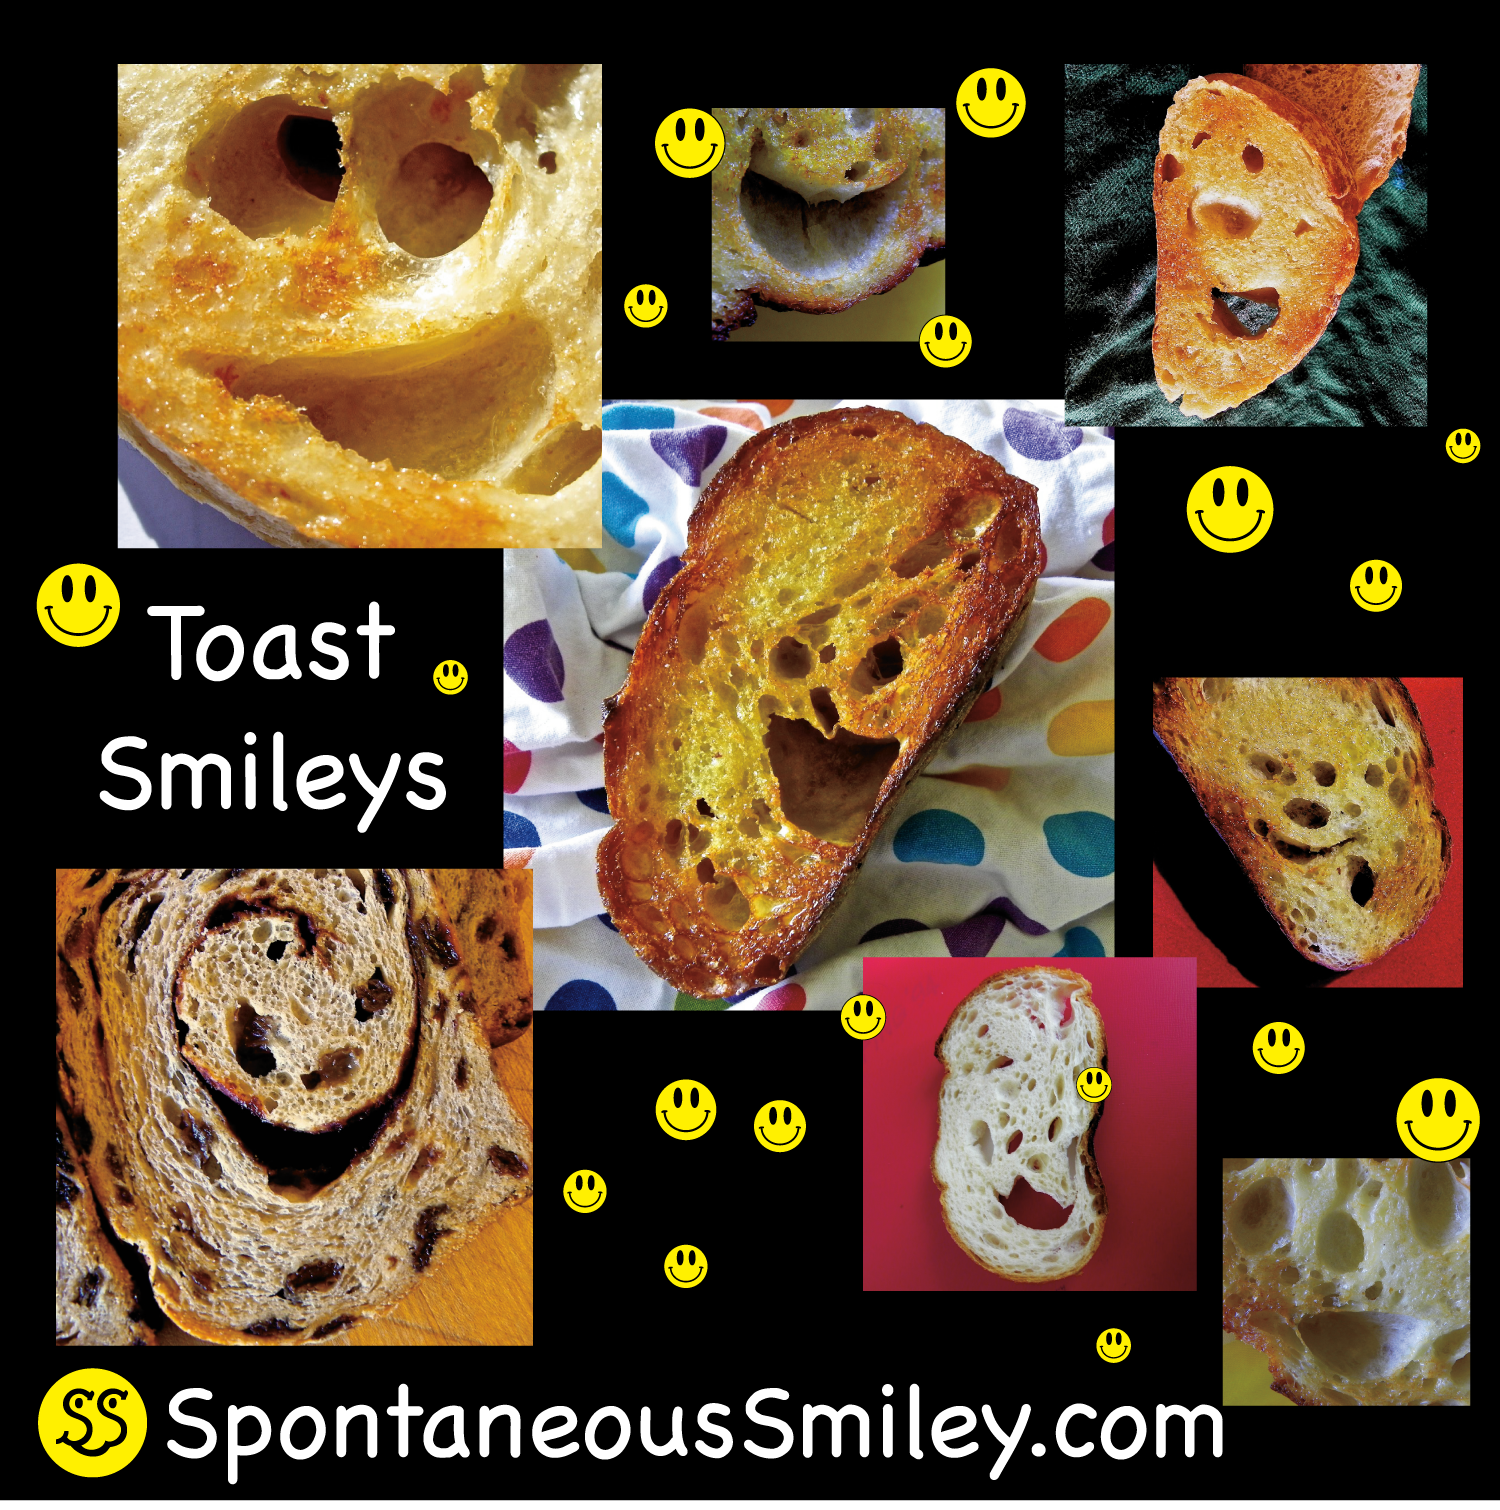 toast smileys